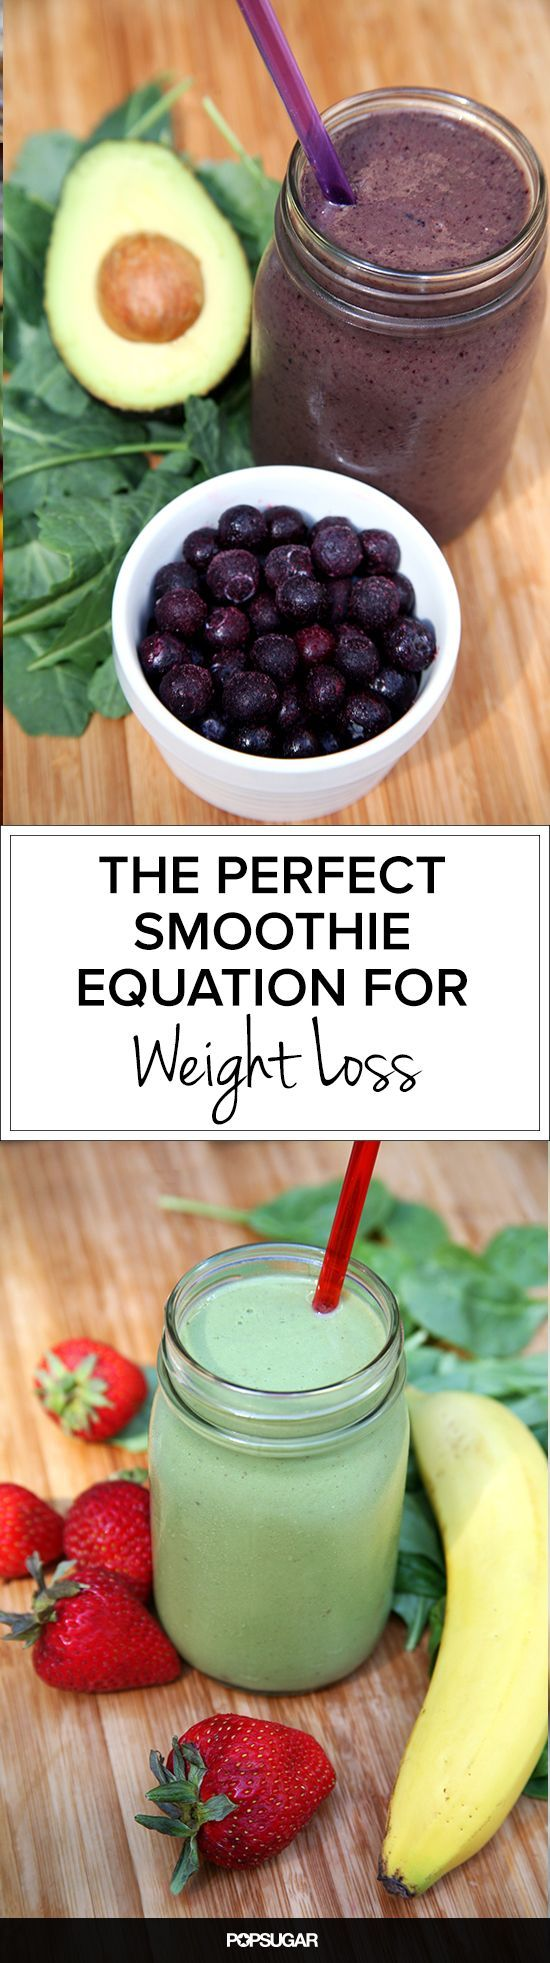 Whether you're new to the smoothie-making scene with a barely-out-of-the-box NutriBullet in your kitchen or your blender has hundreds of smoothies under its blades, you can easily learn how to make a delicious, satisfying smoothie that can also help you